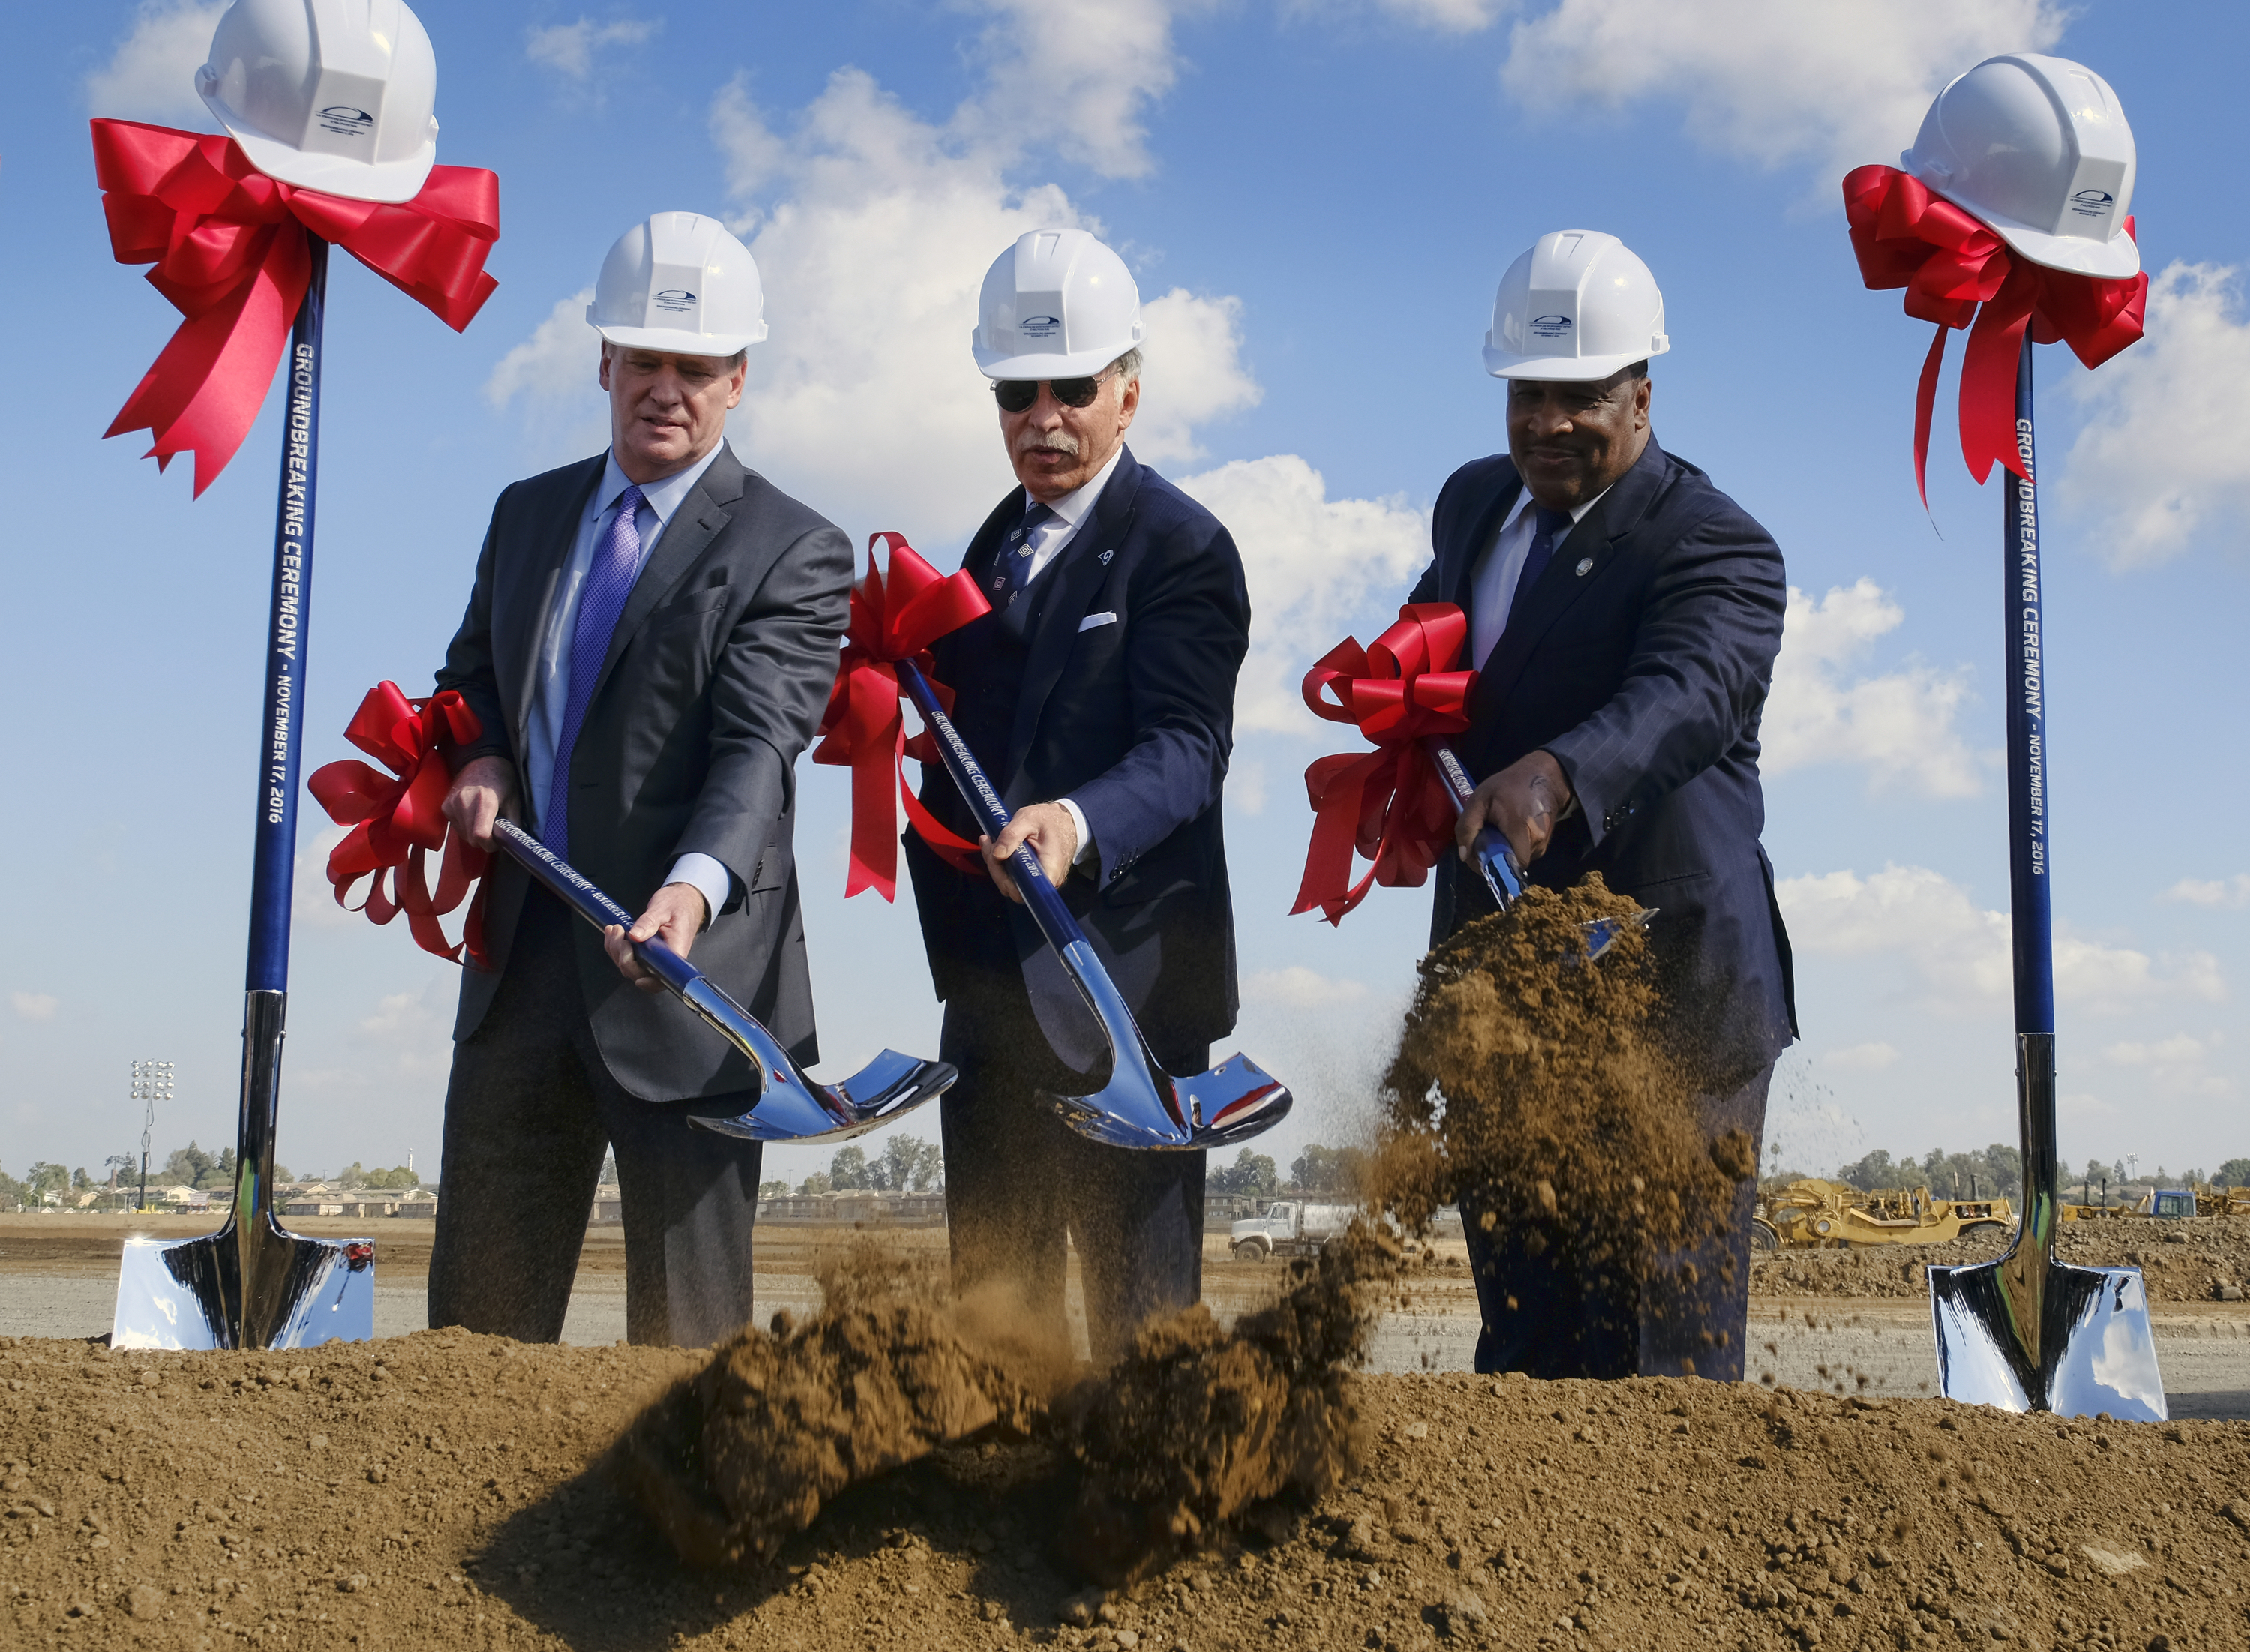 NFL Commissioner Roger Goodell, left, joins Los Angeles Rams owner Stan Kroenke, center, and Inglewood Mayor James T. Butts Jr. during groundbreaking ceremonies for the team's new stadium in Inglewood, Calif., Thursday, Nov. 17, 2016. (AP Photo/Richard Vo